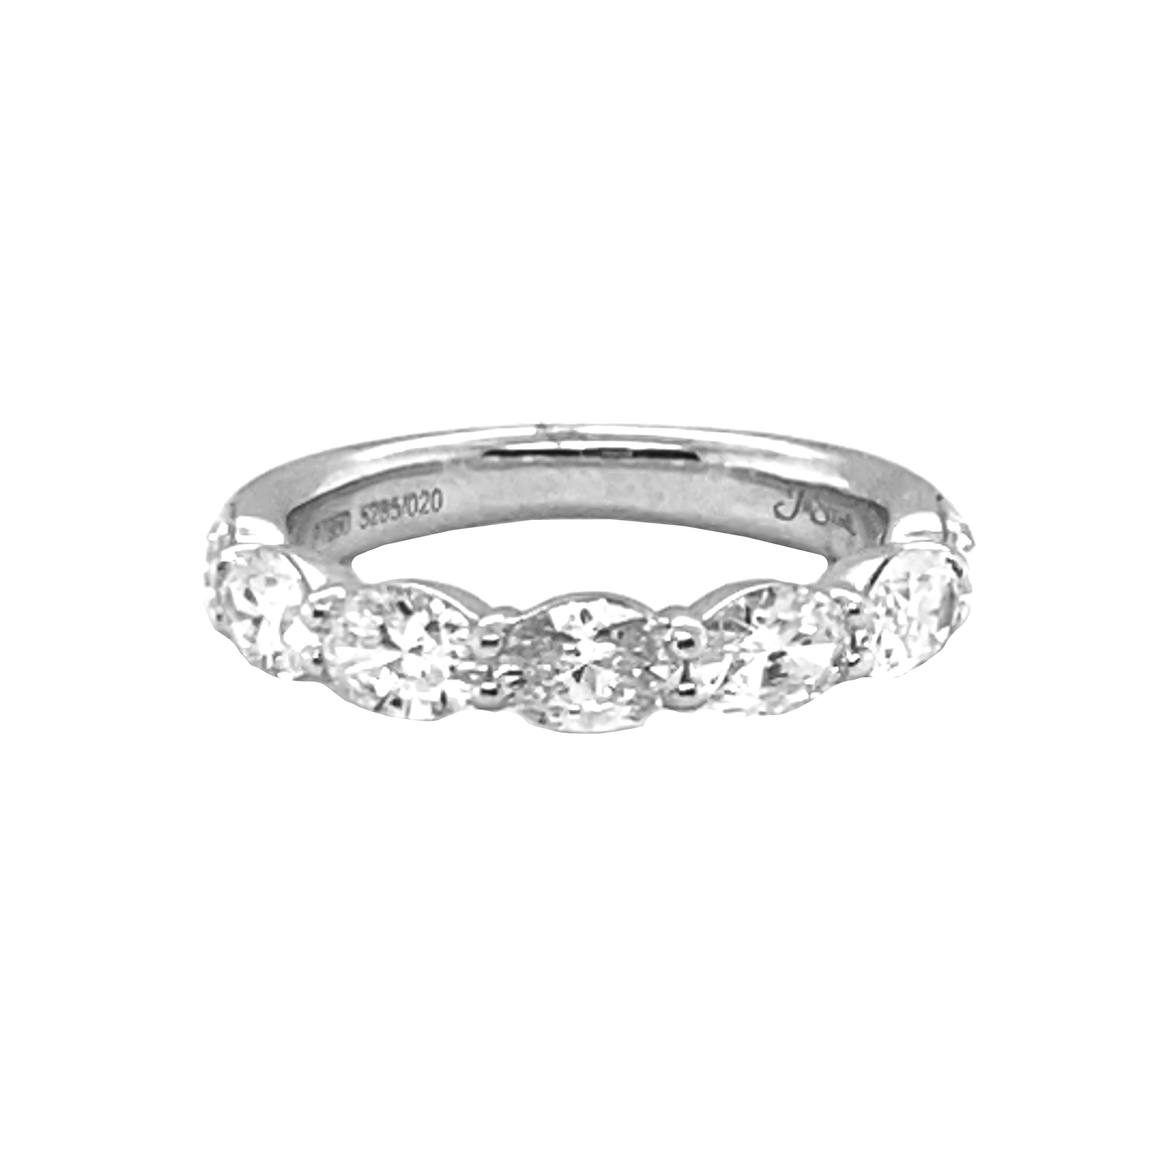 Oval Shared Prong Ring - Lesley Ann Jewels